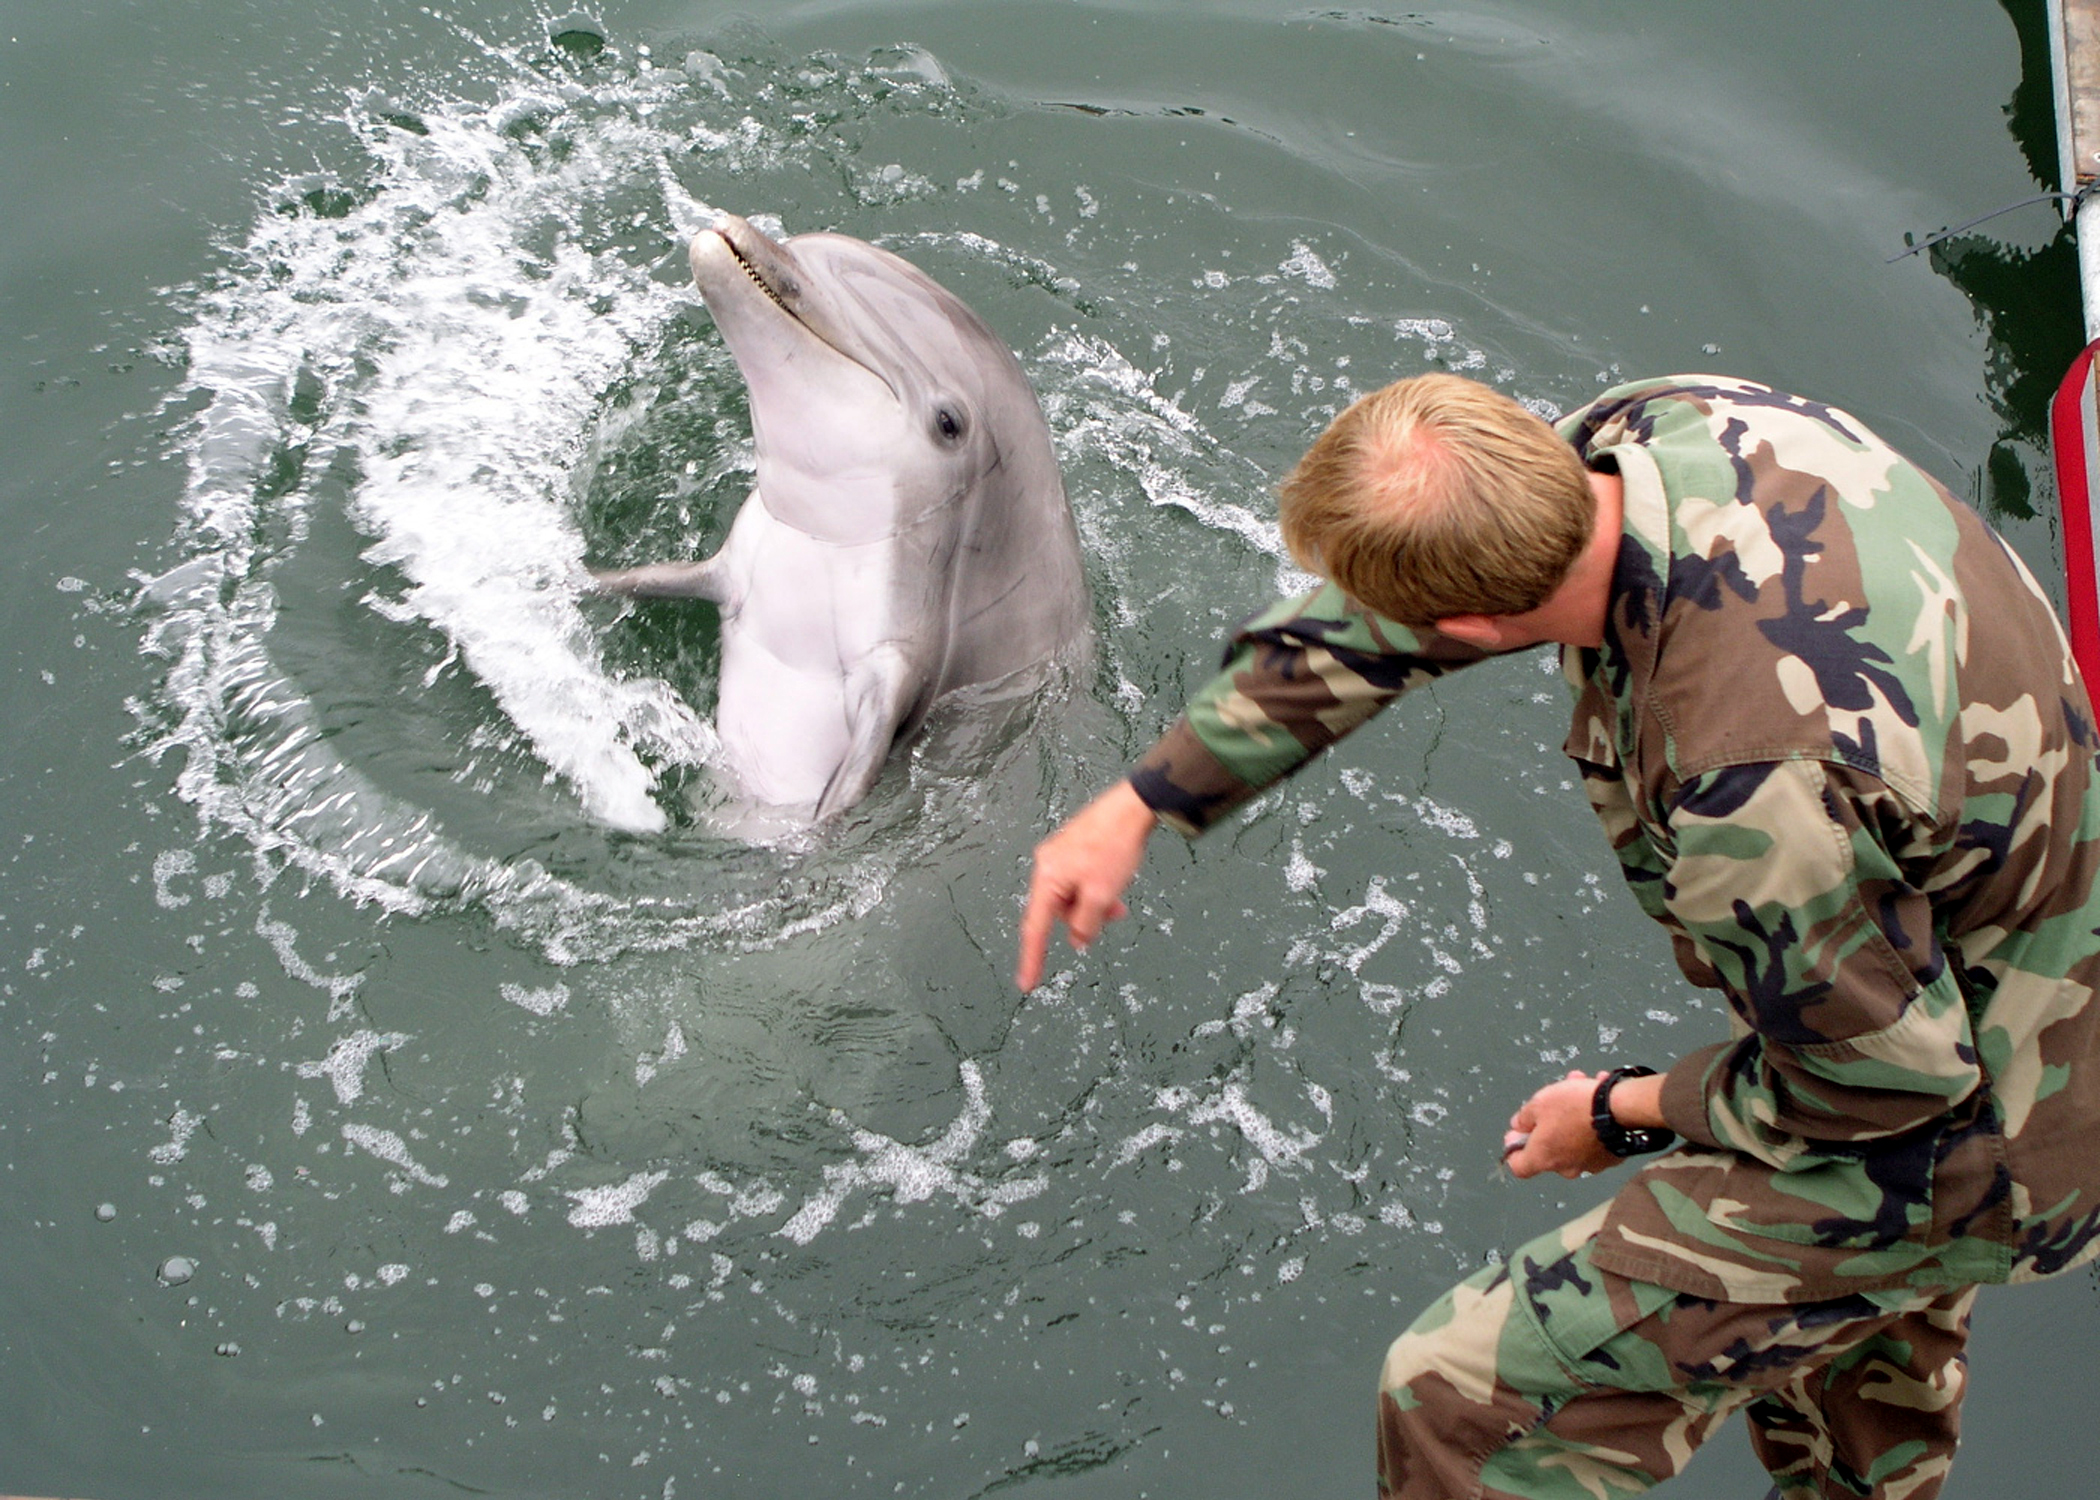 050524-N-2327-G-002 San Pedro, Calif. (May 24, 2005) - Navy marine mammal handler Electronic Technician 2nd Class Eric Kenas shows how a trained dolphin reacts to different hand gestures, during Lead Shield III/Roguex V, an exercise to test port facility anti-terrorism readiness. The Coast Guard and Navy conducted the two exercises around the ports of Los Angeles and Long Beach. The combined exercise involved 24 local, state and federal agencies in an effort to disrupt a simulated terrorist attack, respond to the consequences and maintain port operations. U.S. Navy Photo by Illustrator Draftsman 1st Class Pierre G. Georges (RELEASED)